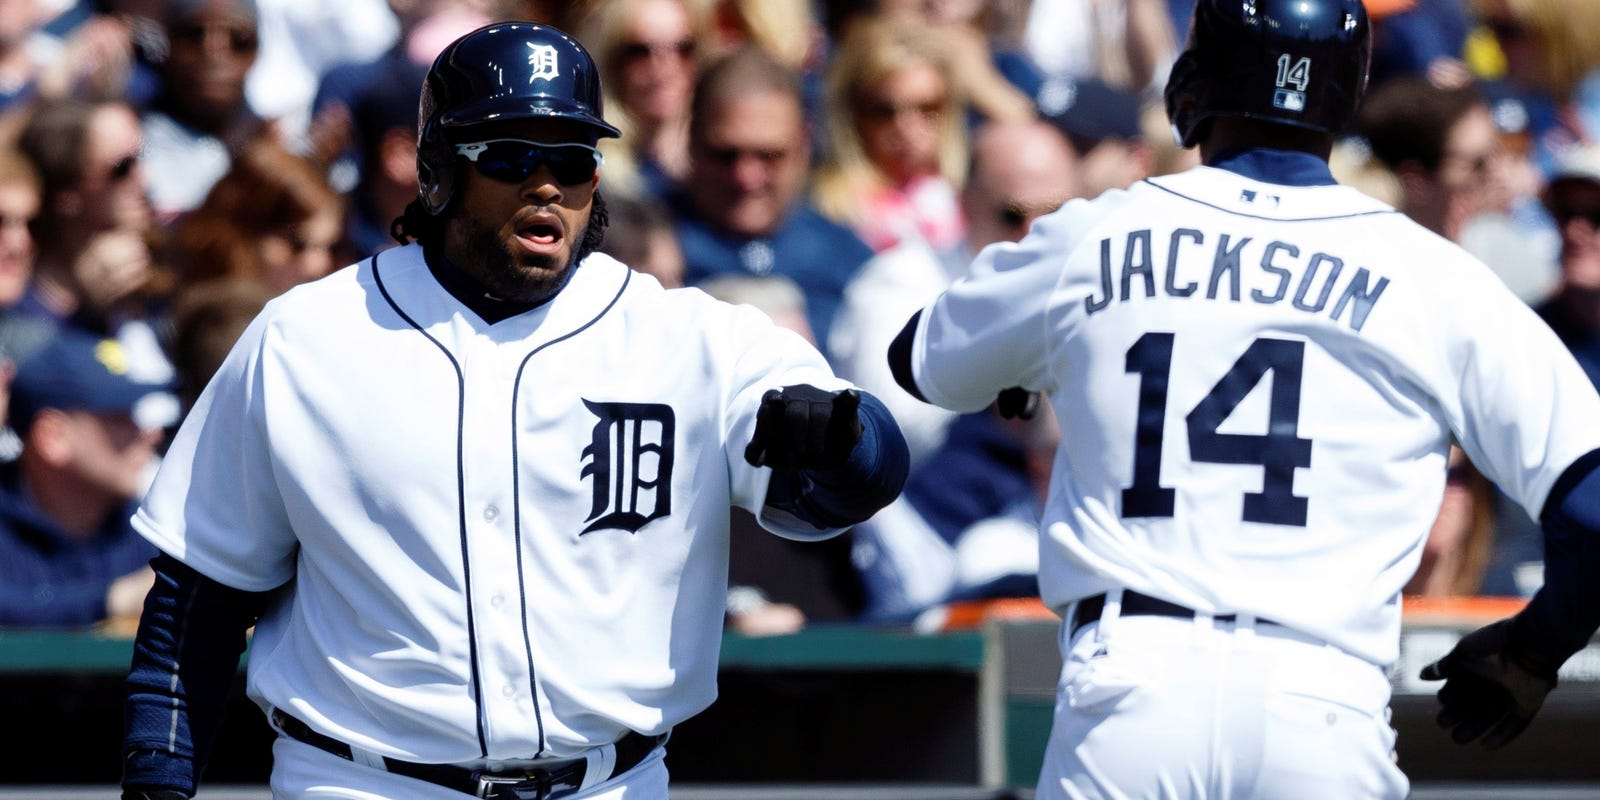 detroit tigers jackie robinson essay Deadline for annual jackie robinson contest is friday an essay or poem for the 18 th annual detroit tigers jackie robinson art, essay & poetry contest is this.